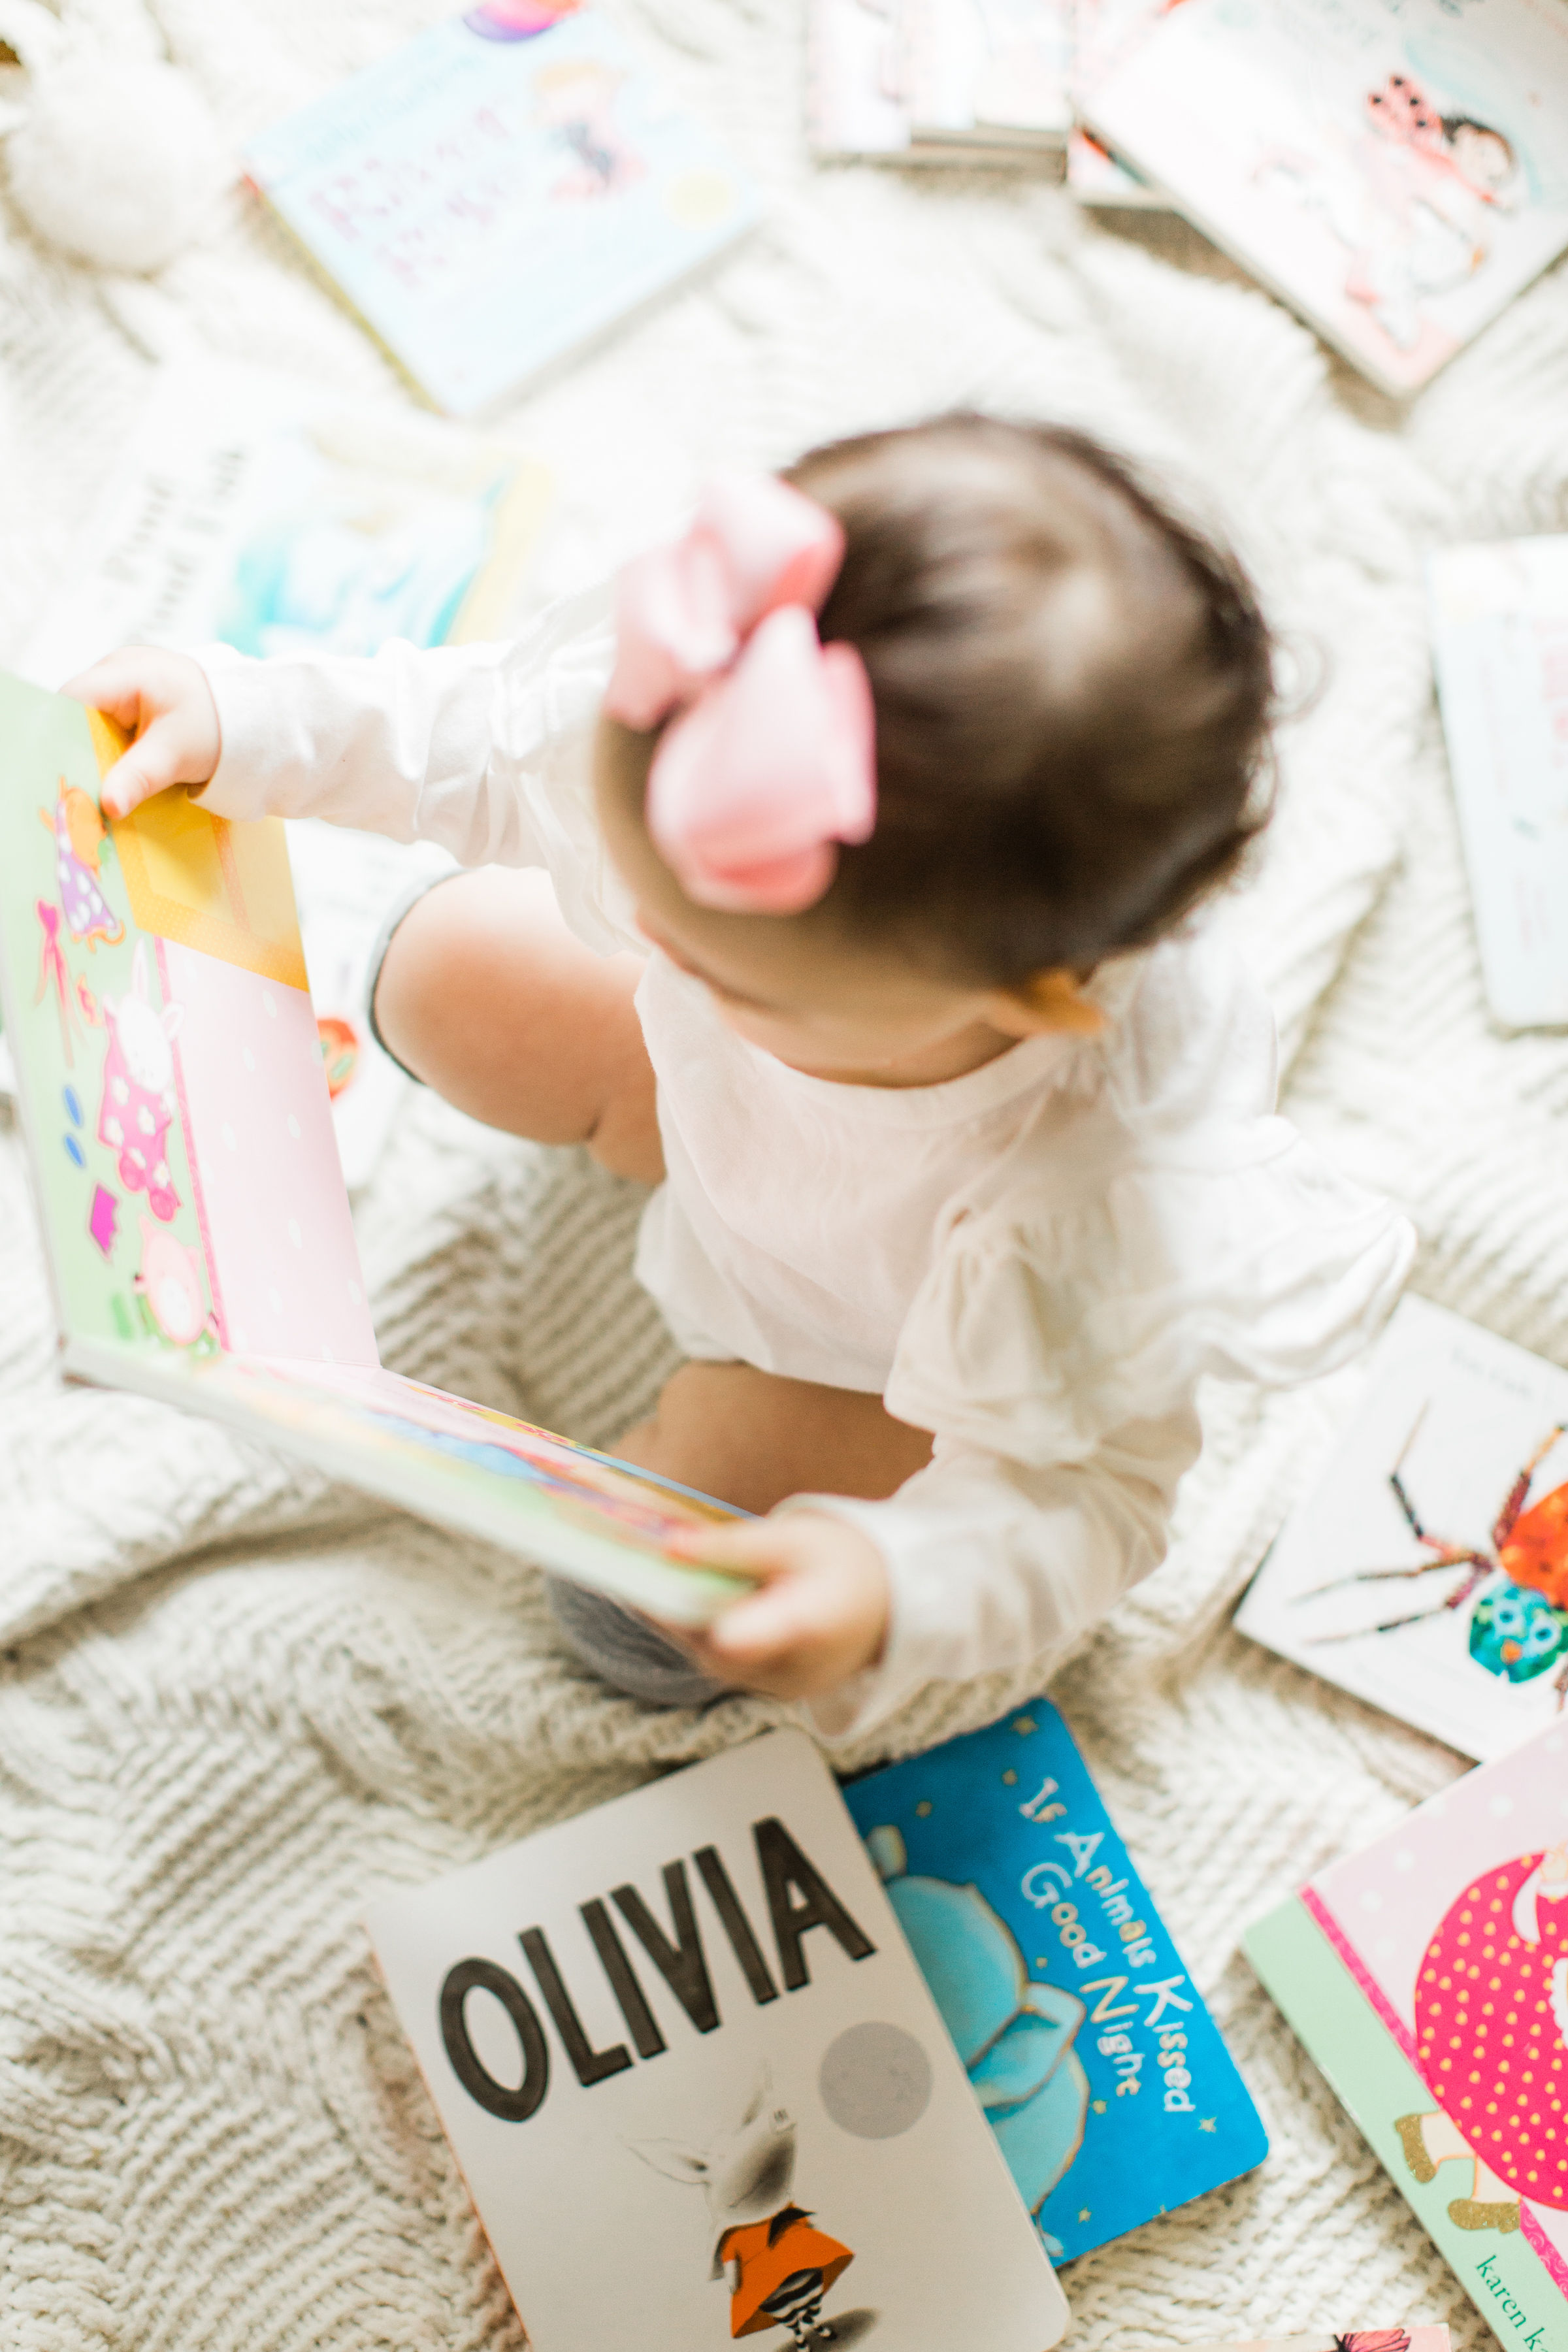 Sale on Children's Books at Amazon, baby playing with books